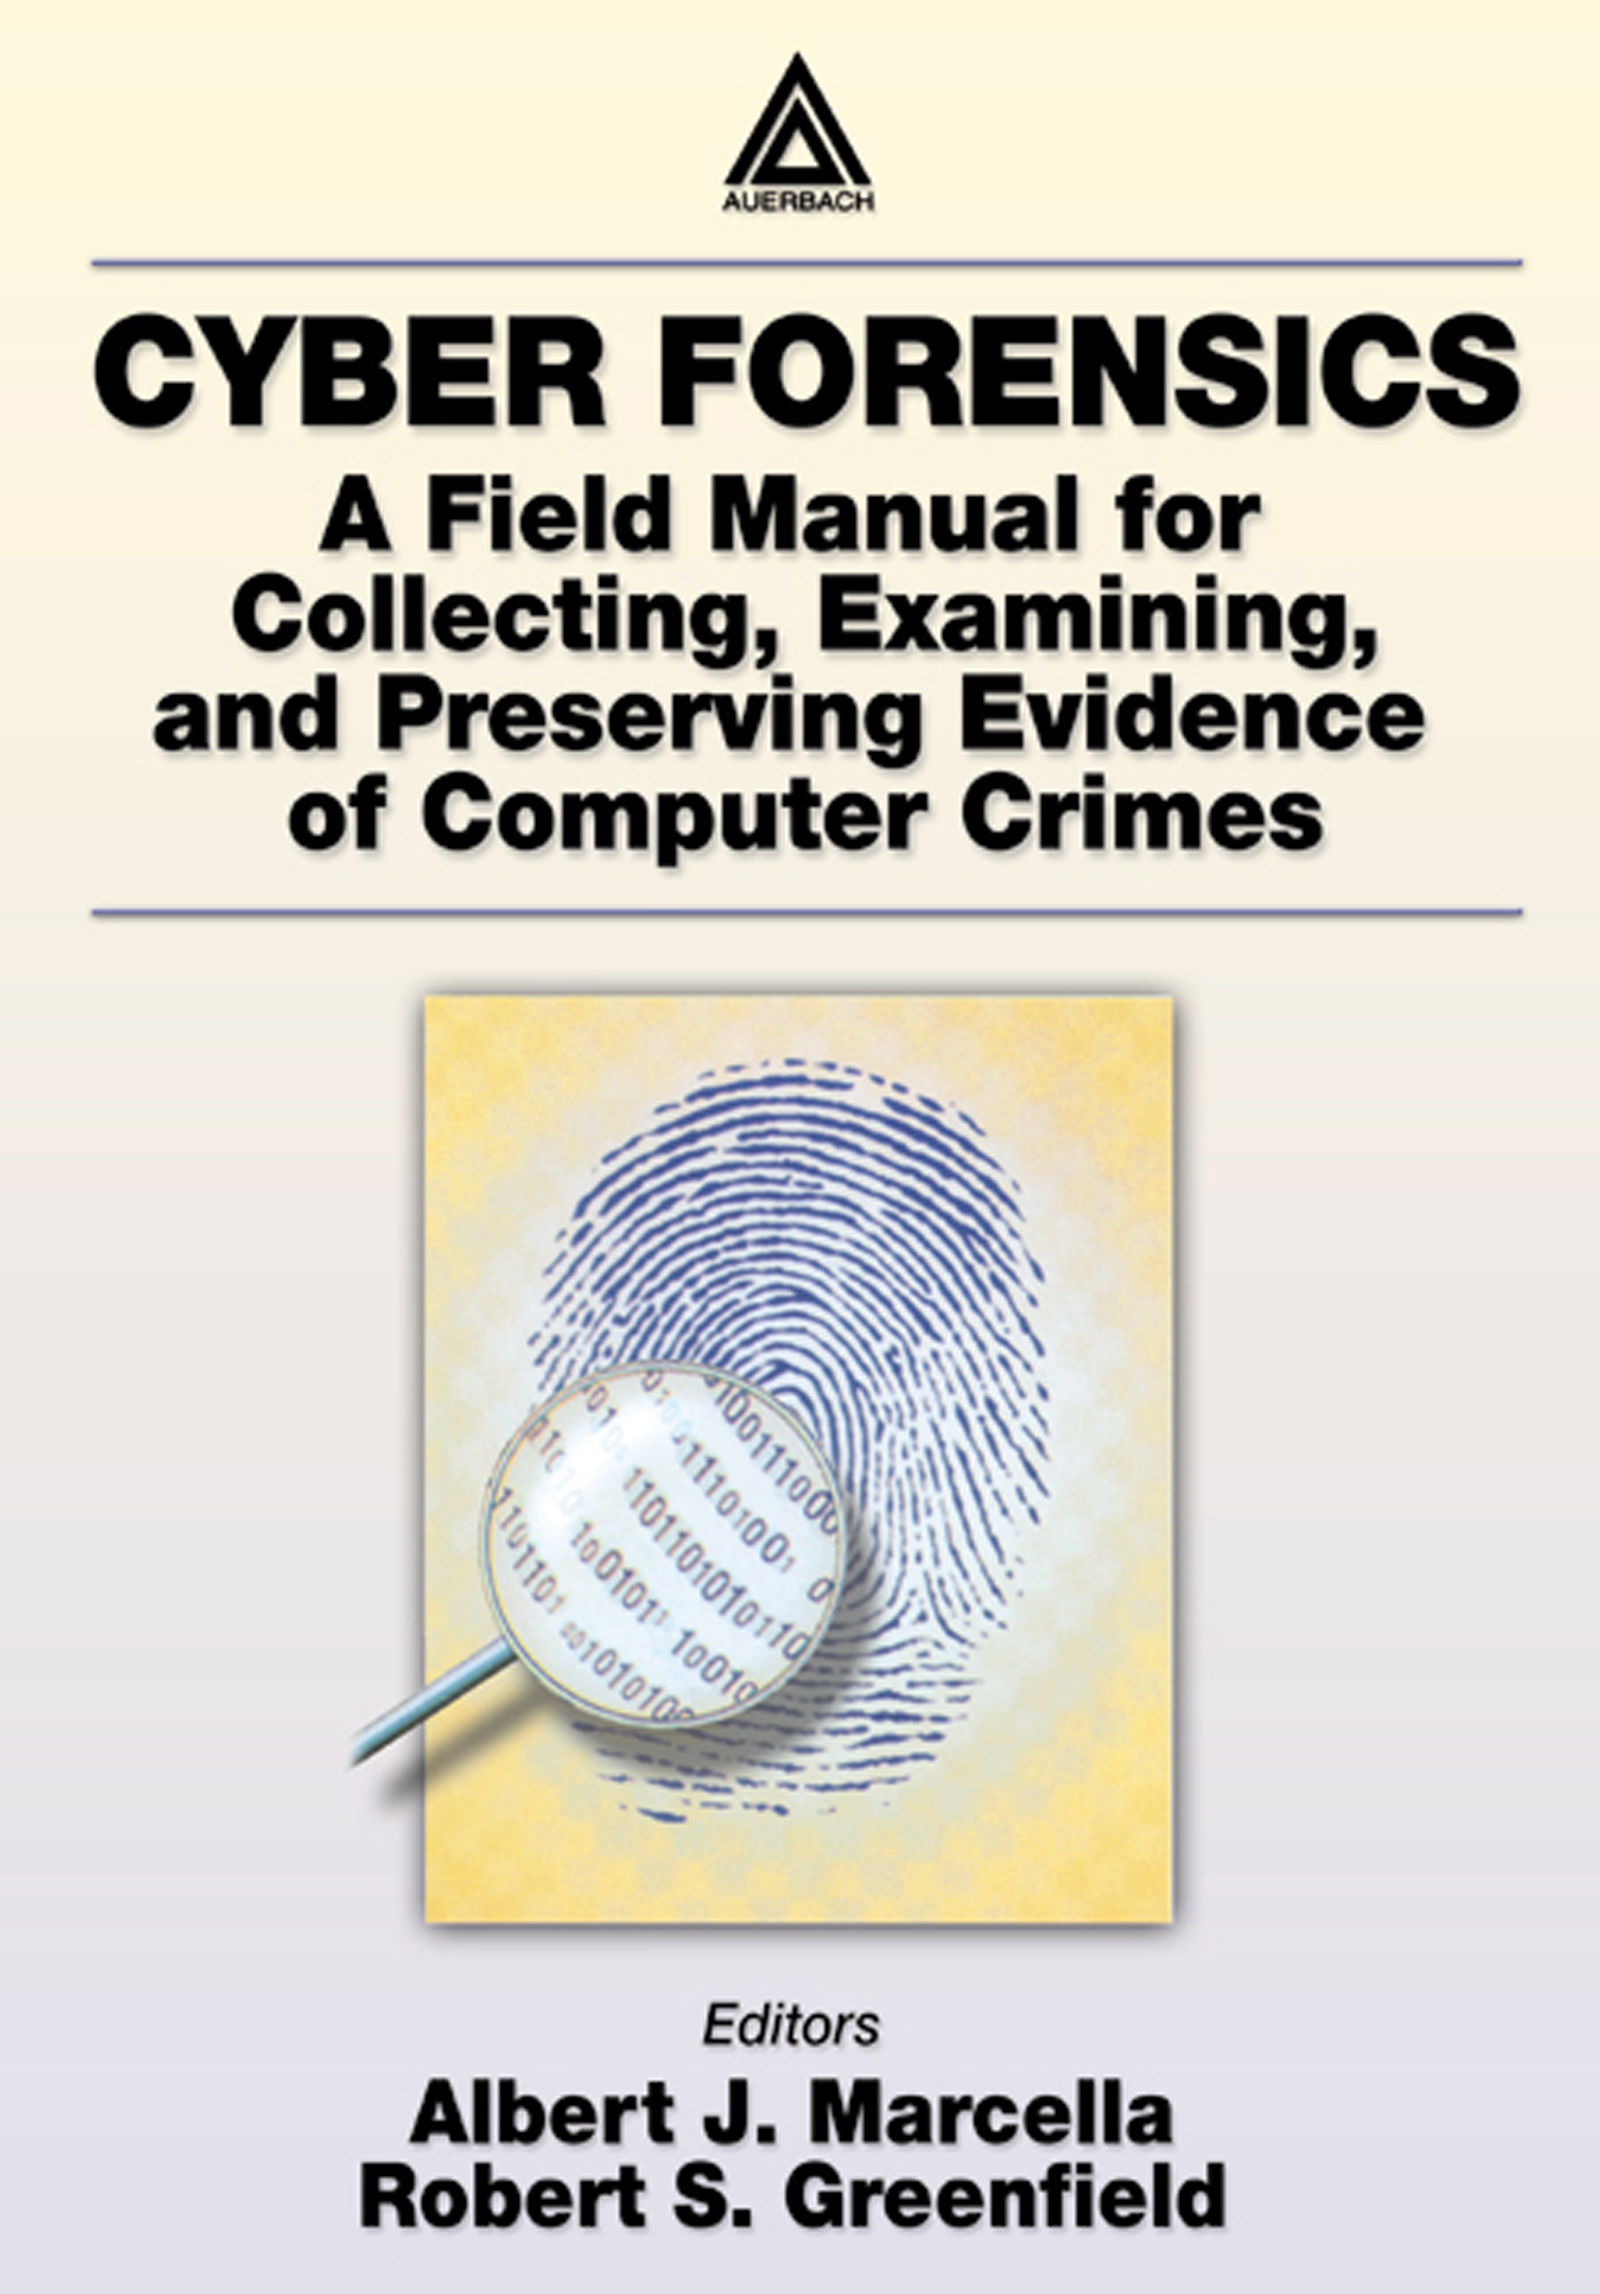 ISBN 9781420000115 product image for Cyber Forensics | upcitemdb.com